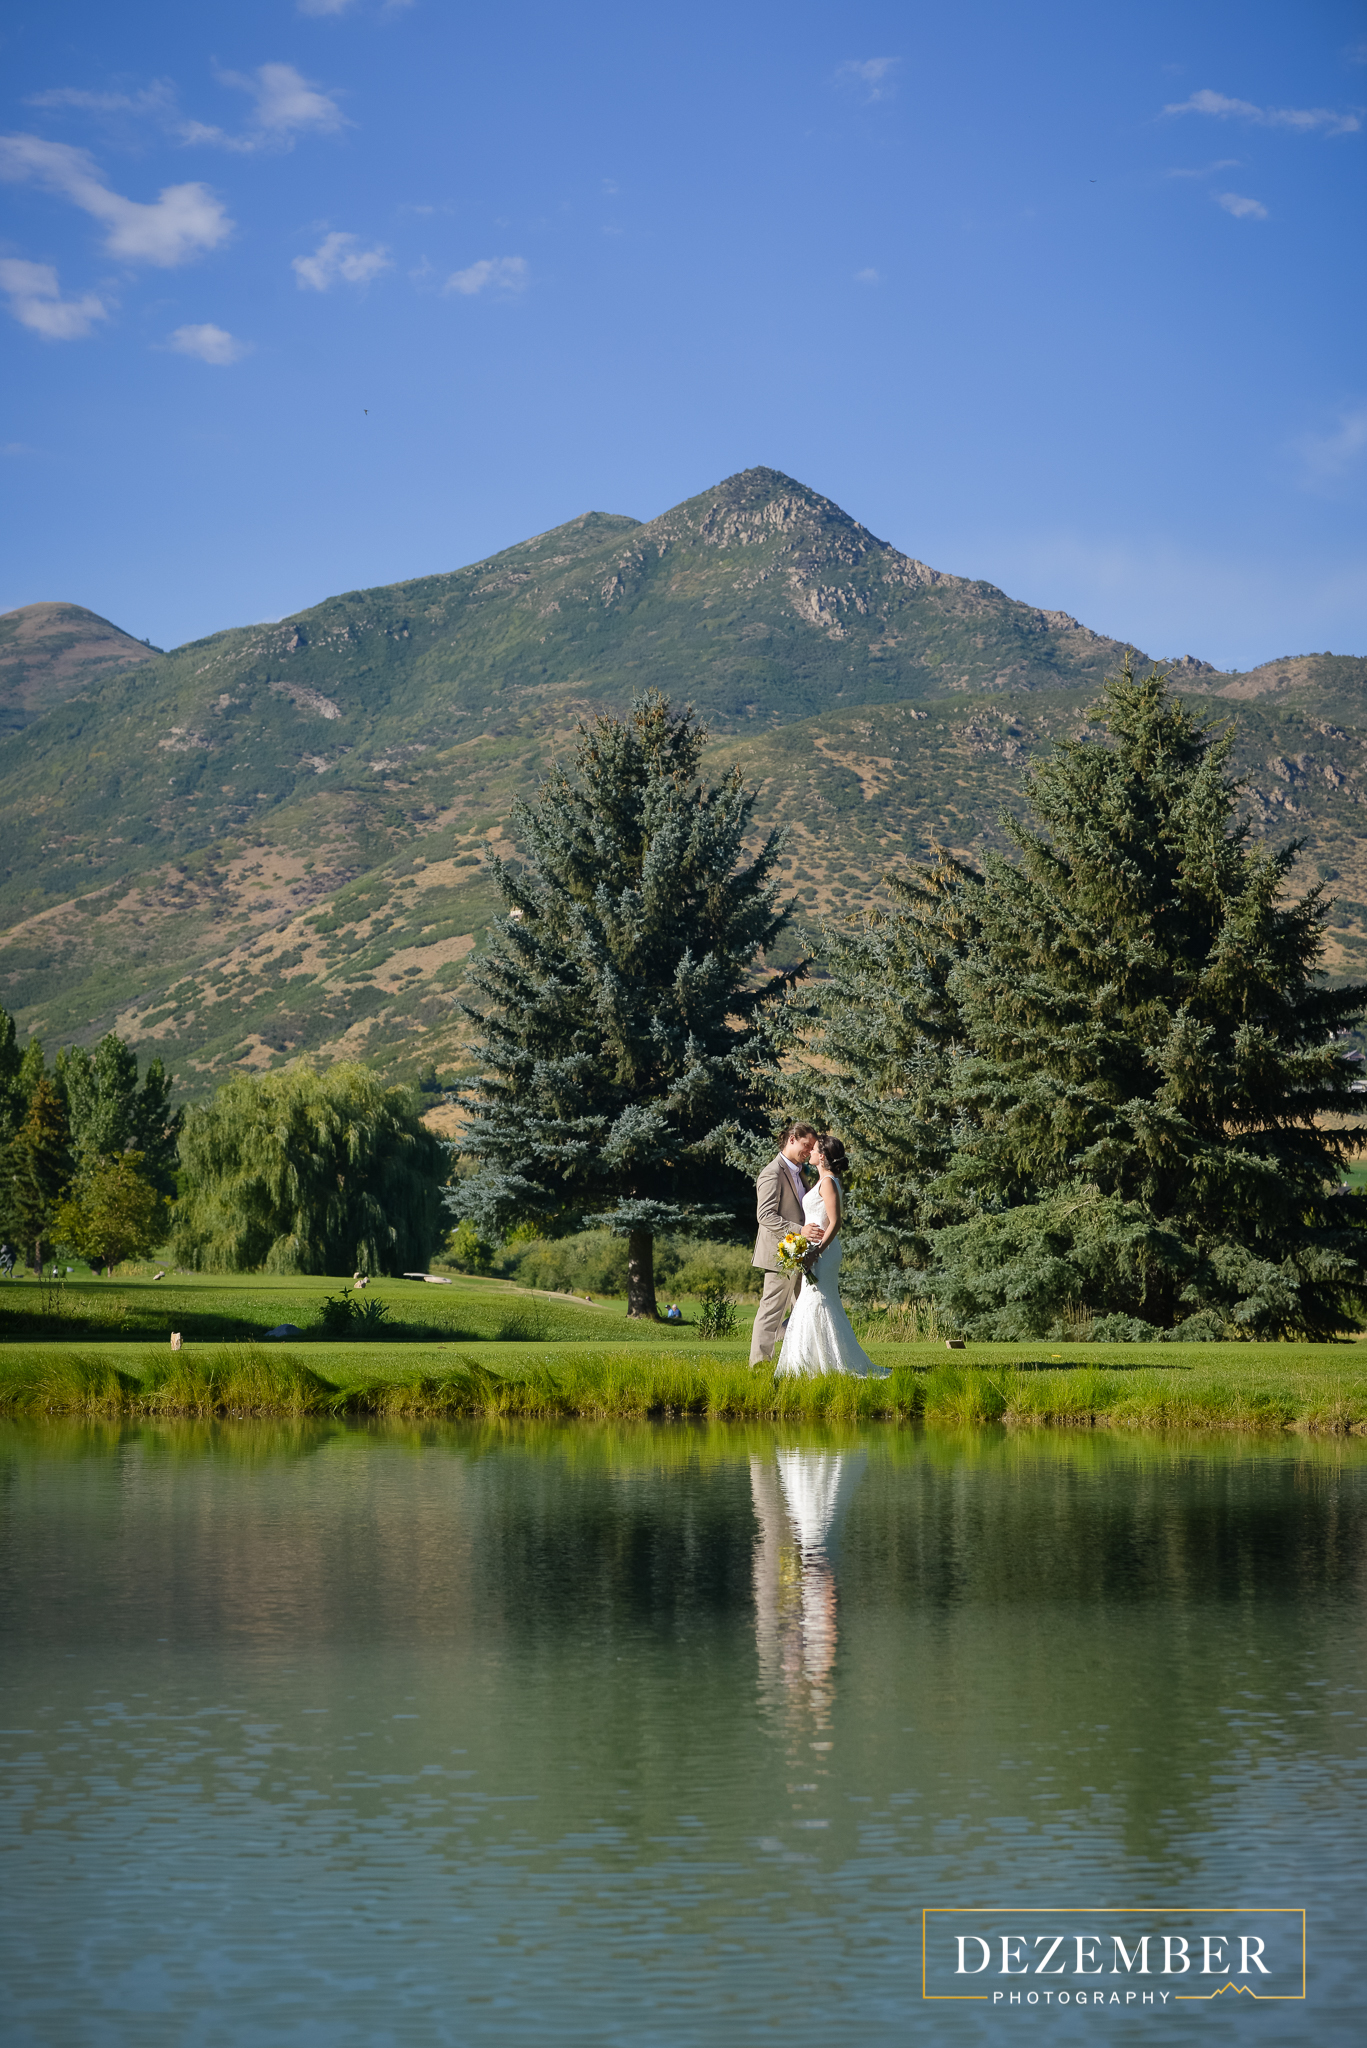 Birde and Groom Kissing by the Outdoor Pond on the Crater Springs Golf Course